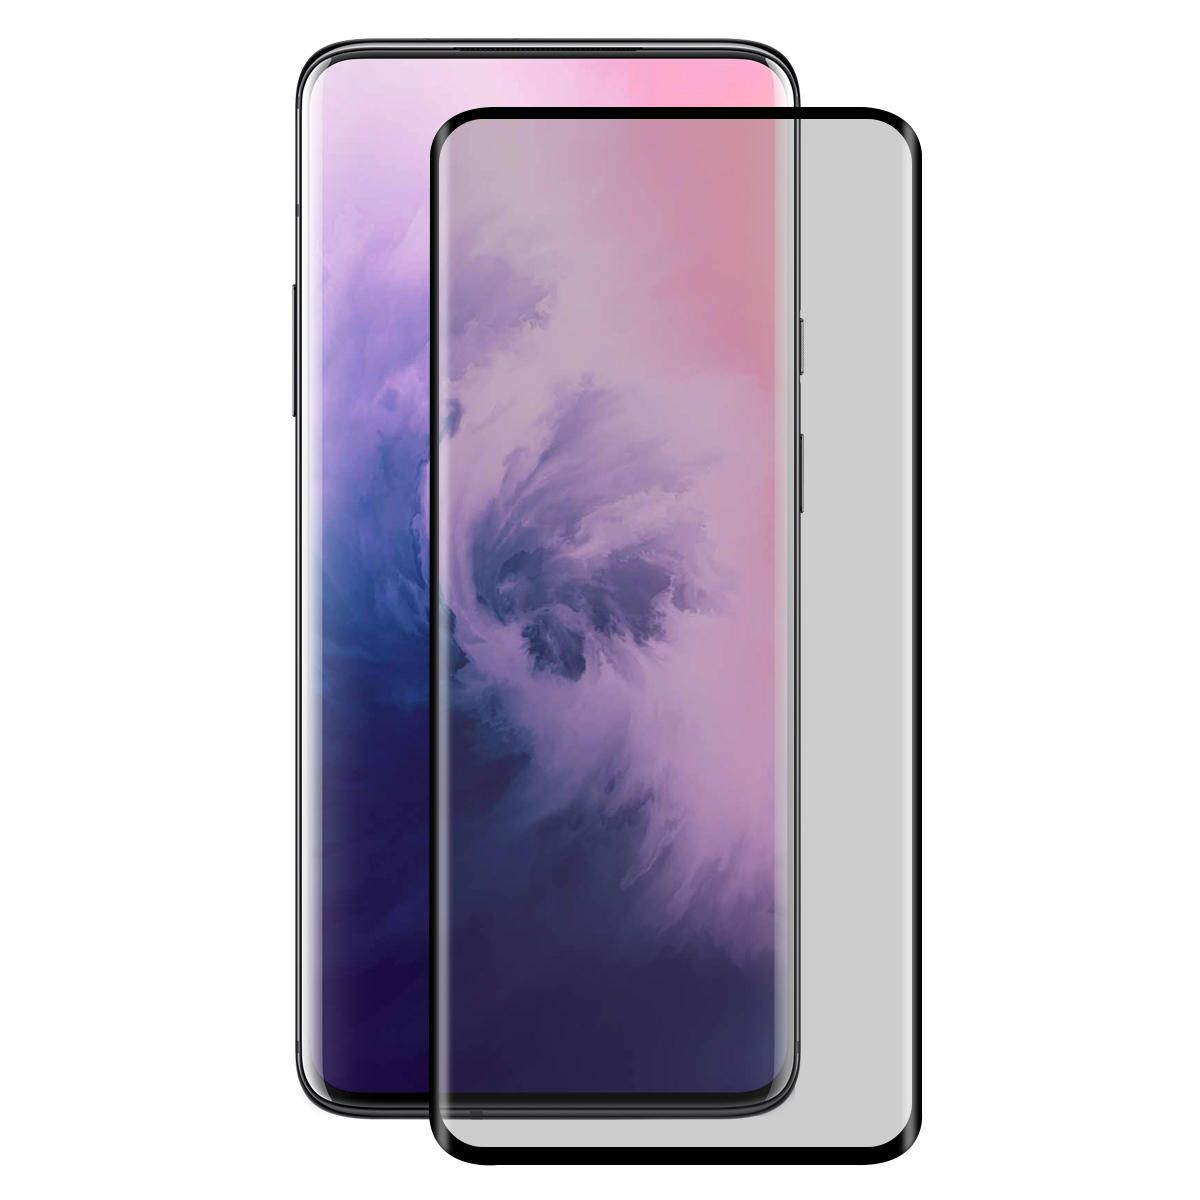 FHL US$10.59 ENKAY 9H 3D Anti-explosion Anti-peeping Hot Blending Full Coverage Tempered Glass Screen Protector for OnePlus 7 Pro / OnePlus 7T Pro